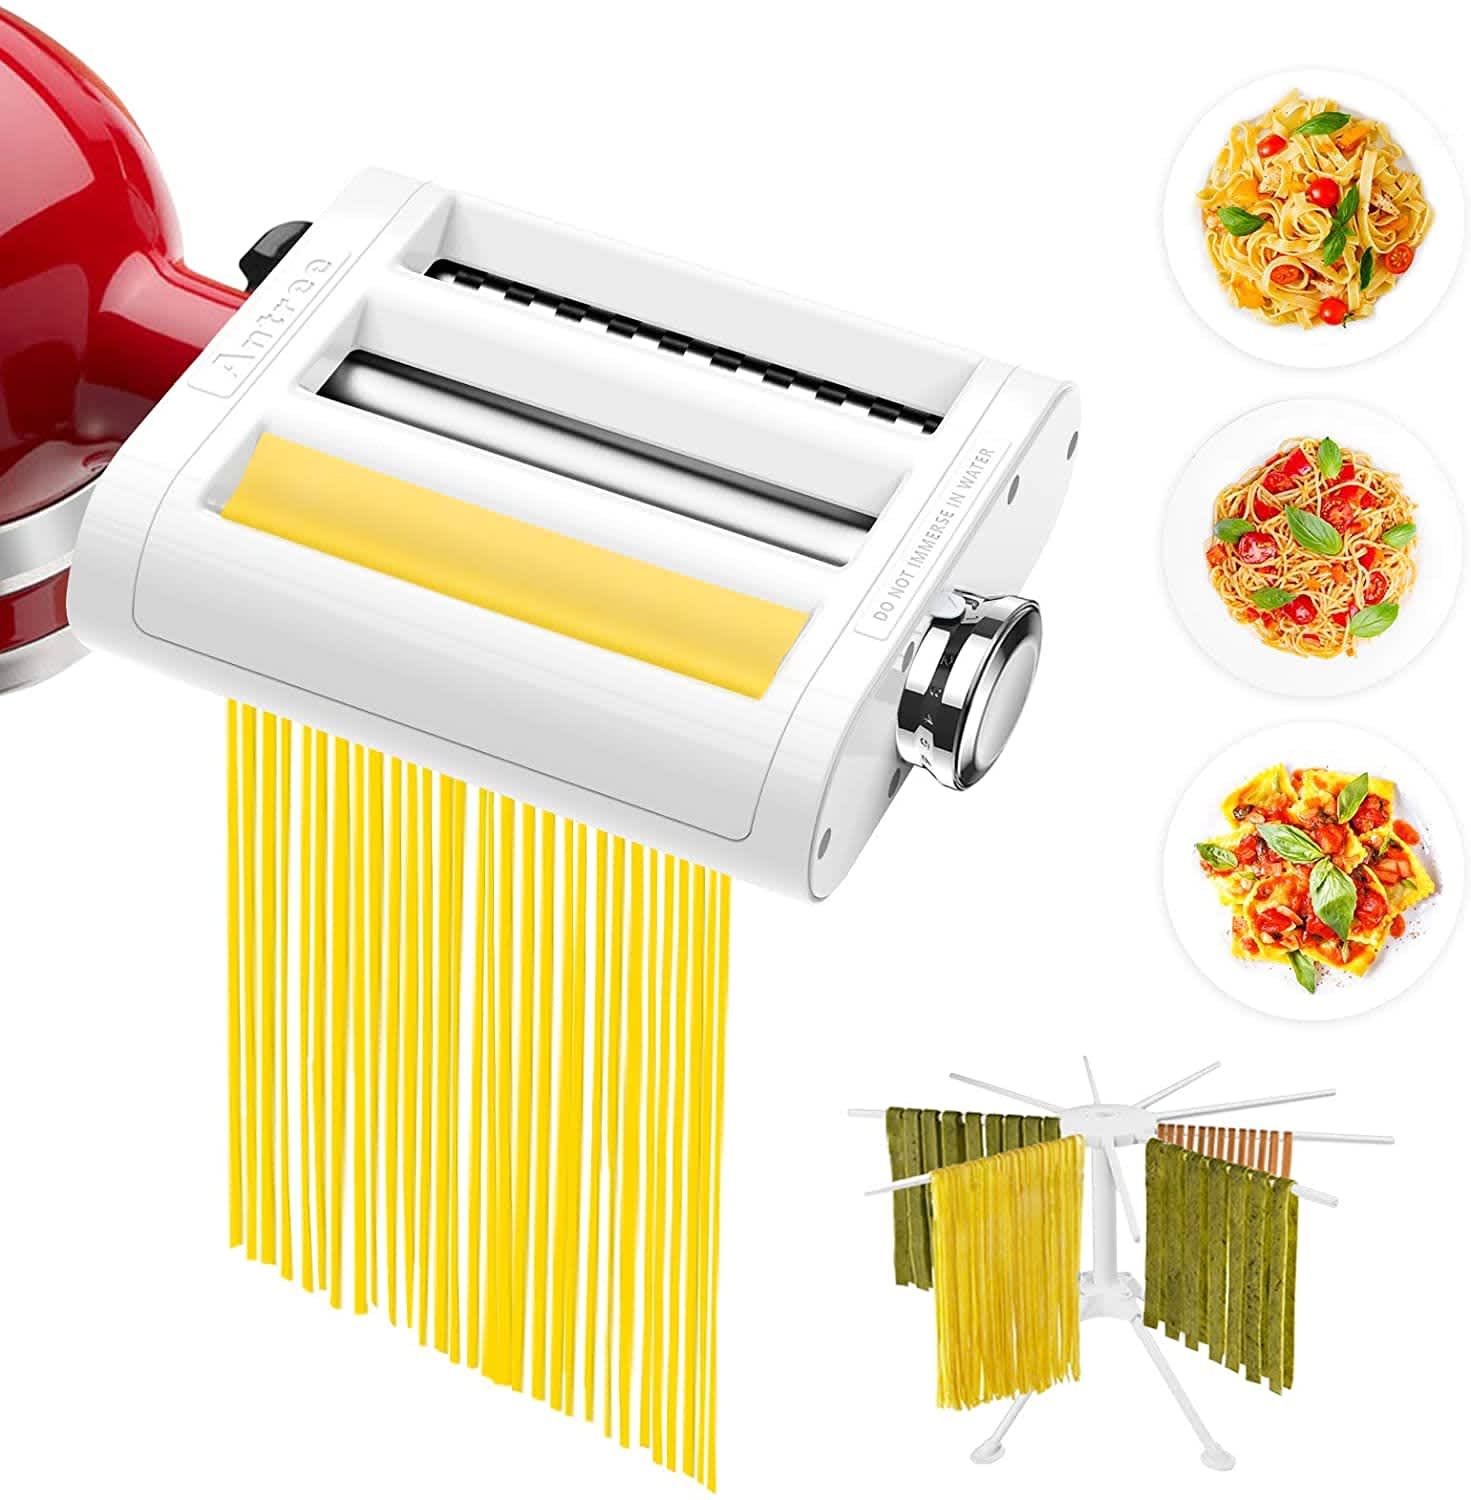 Antree 3-in-1 Pasta Roller and Cutters Set for KitchenAid Stand Mixers